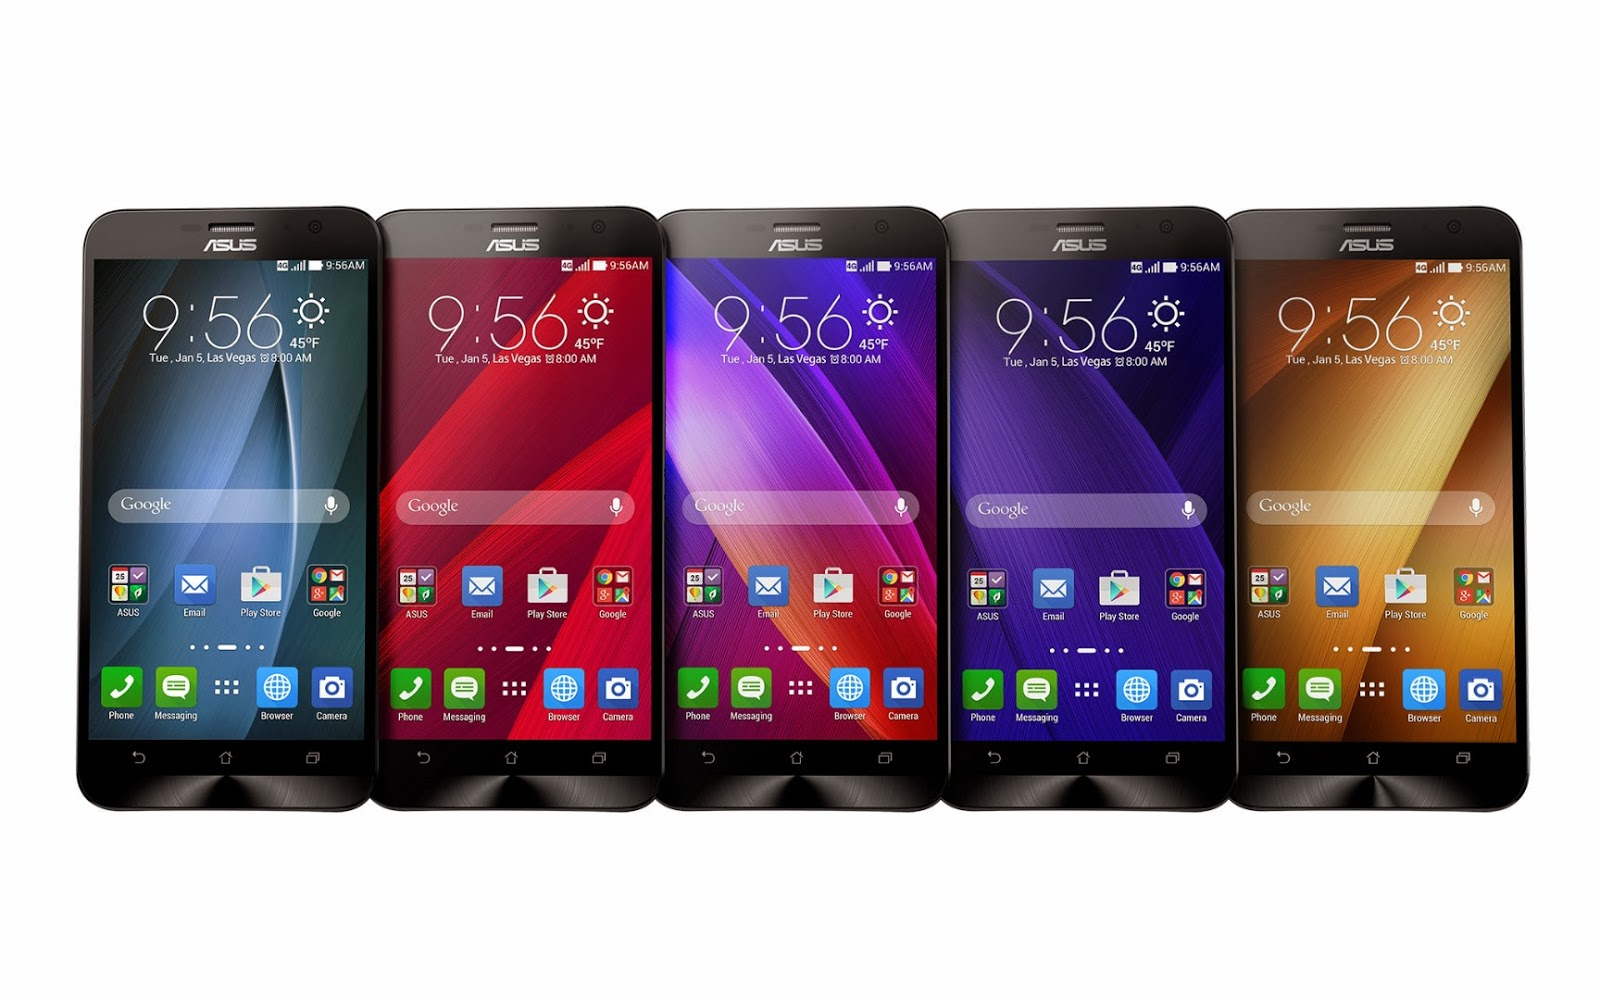 Asus Zenfone 2 Specs Review and Features